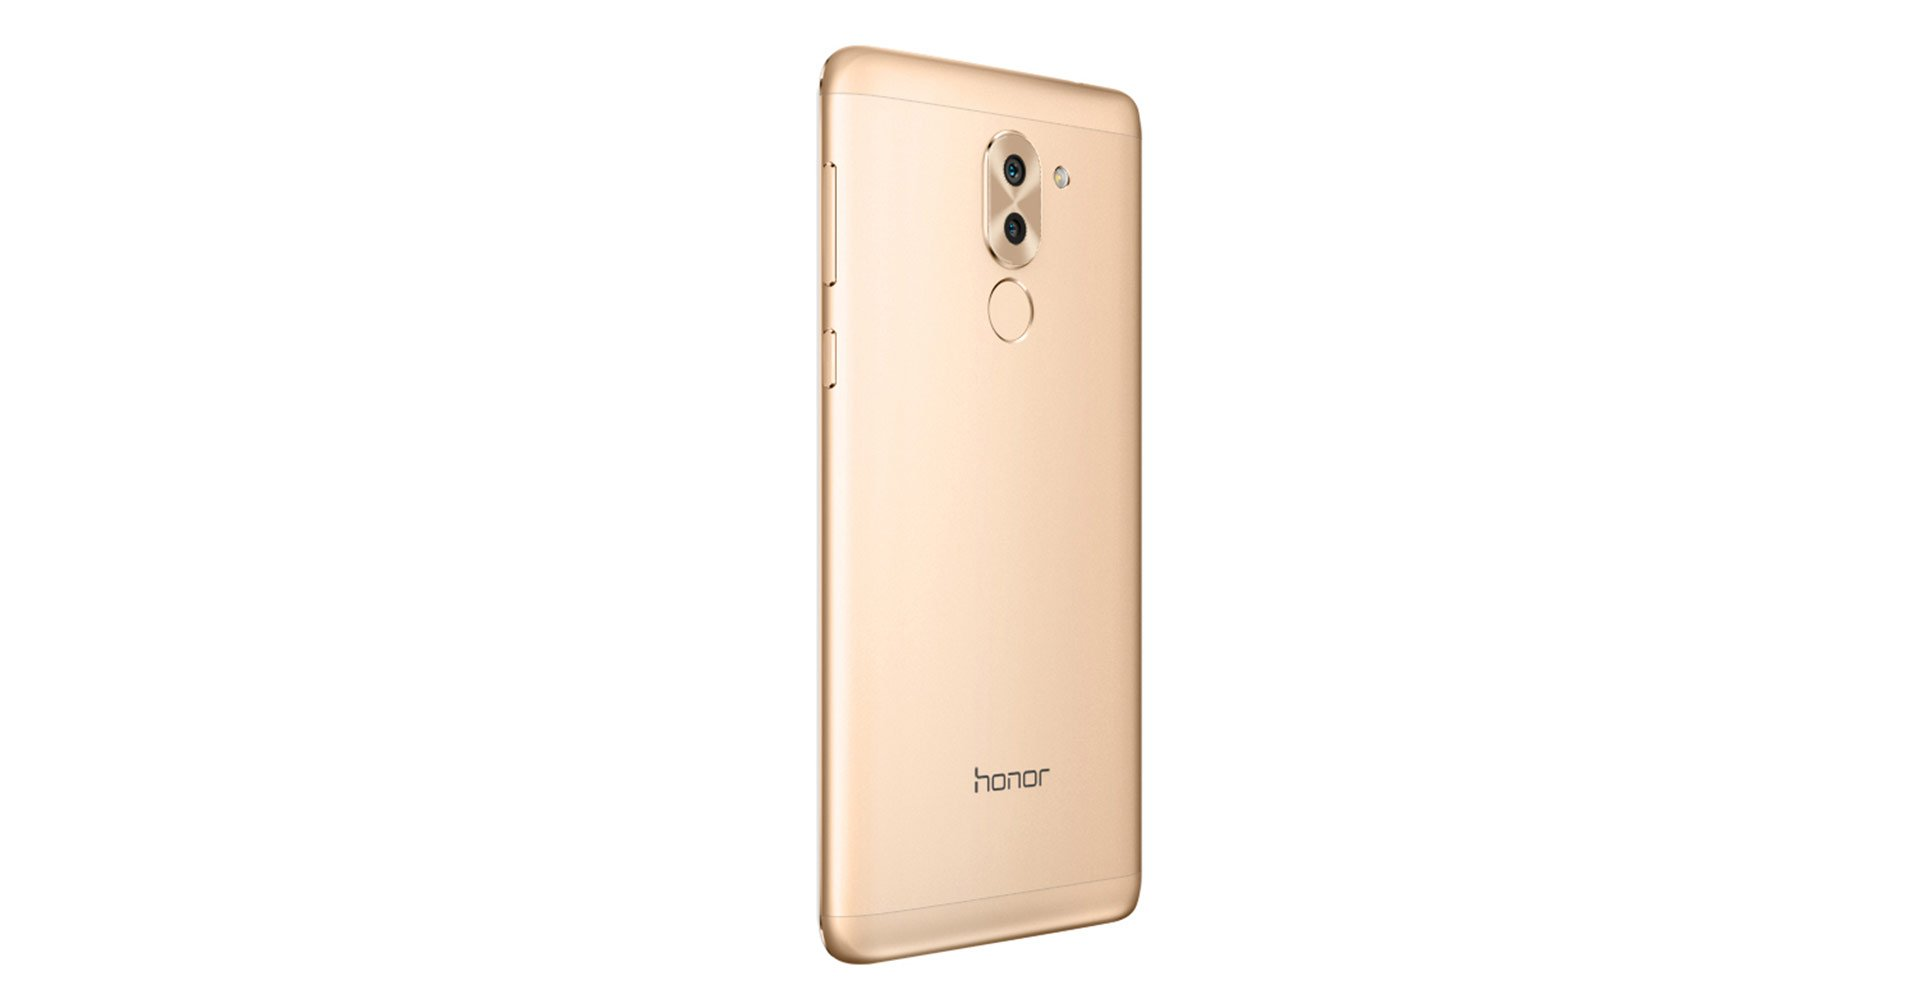 CES: Honor 6X smartphone